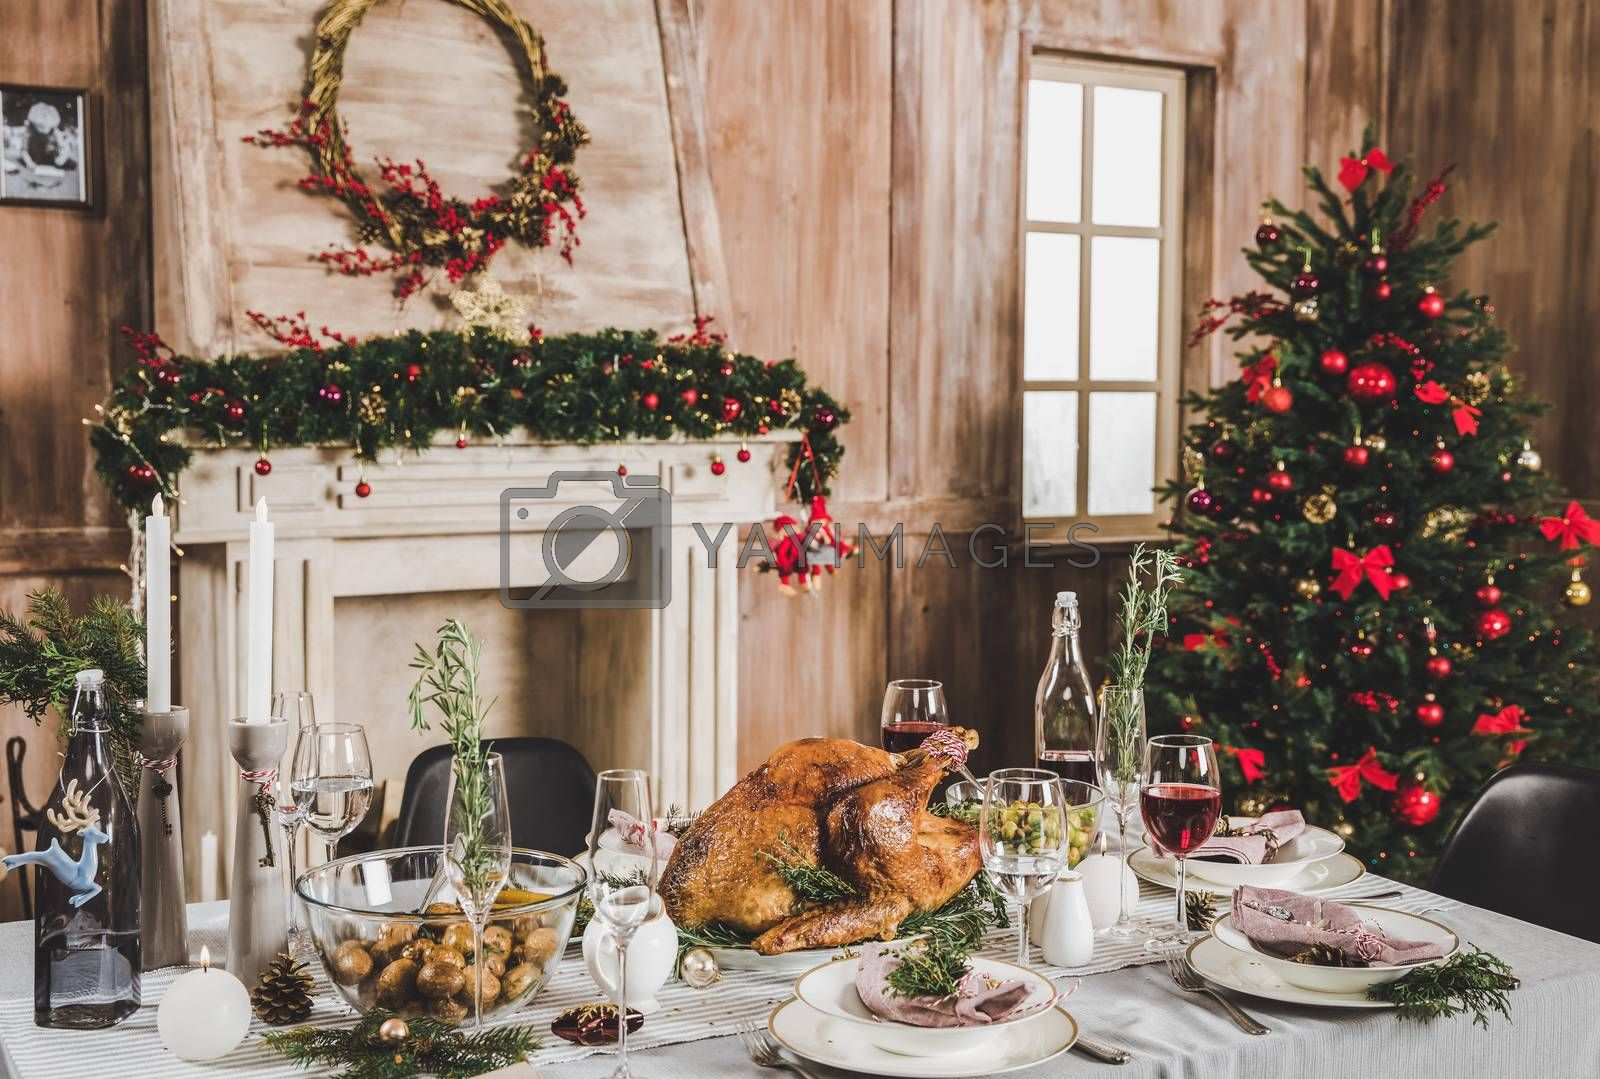 Delicious roasted turkey on served holiday table decorated for Christmas